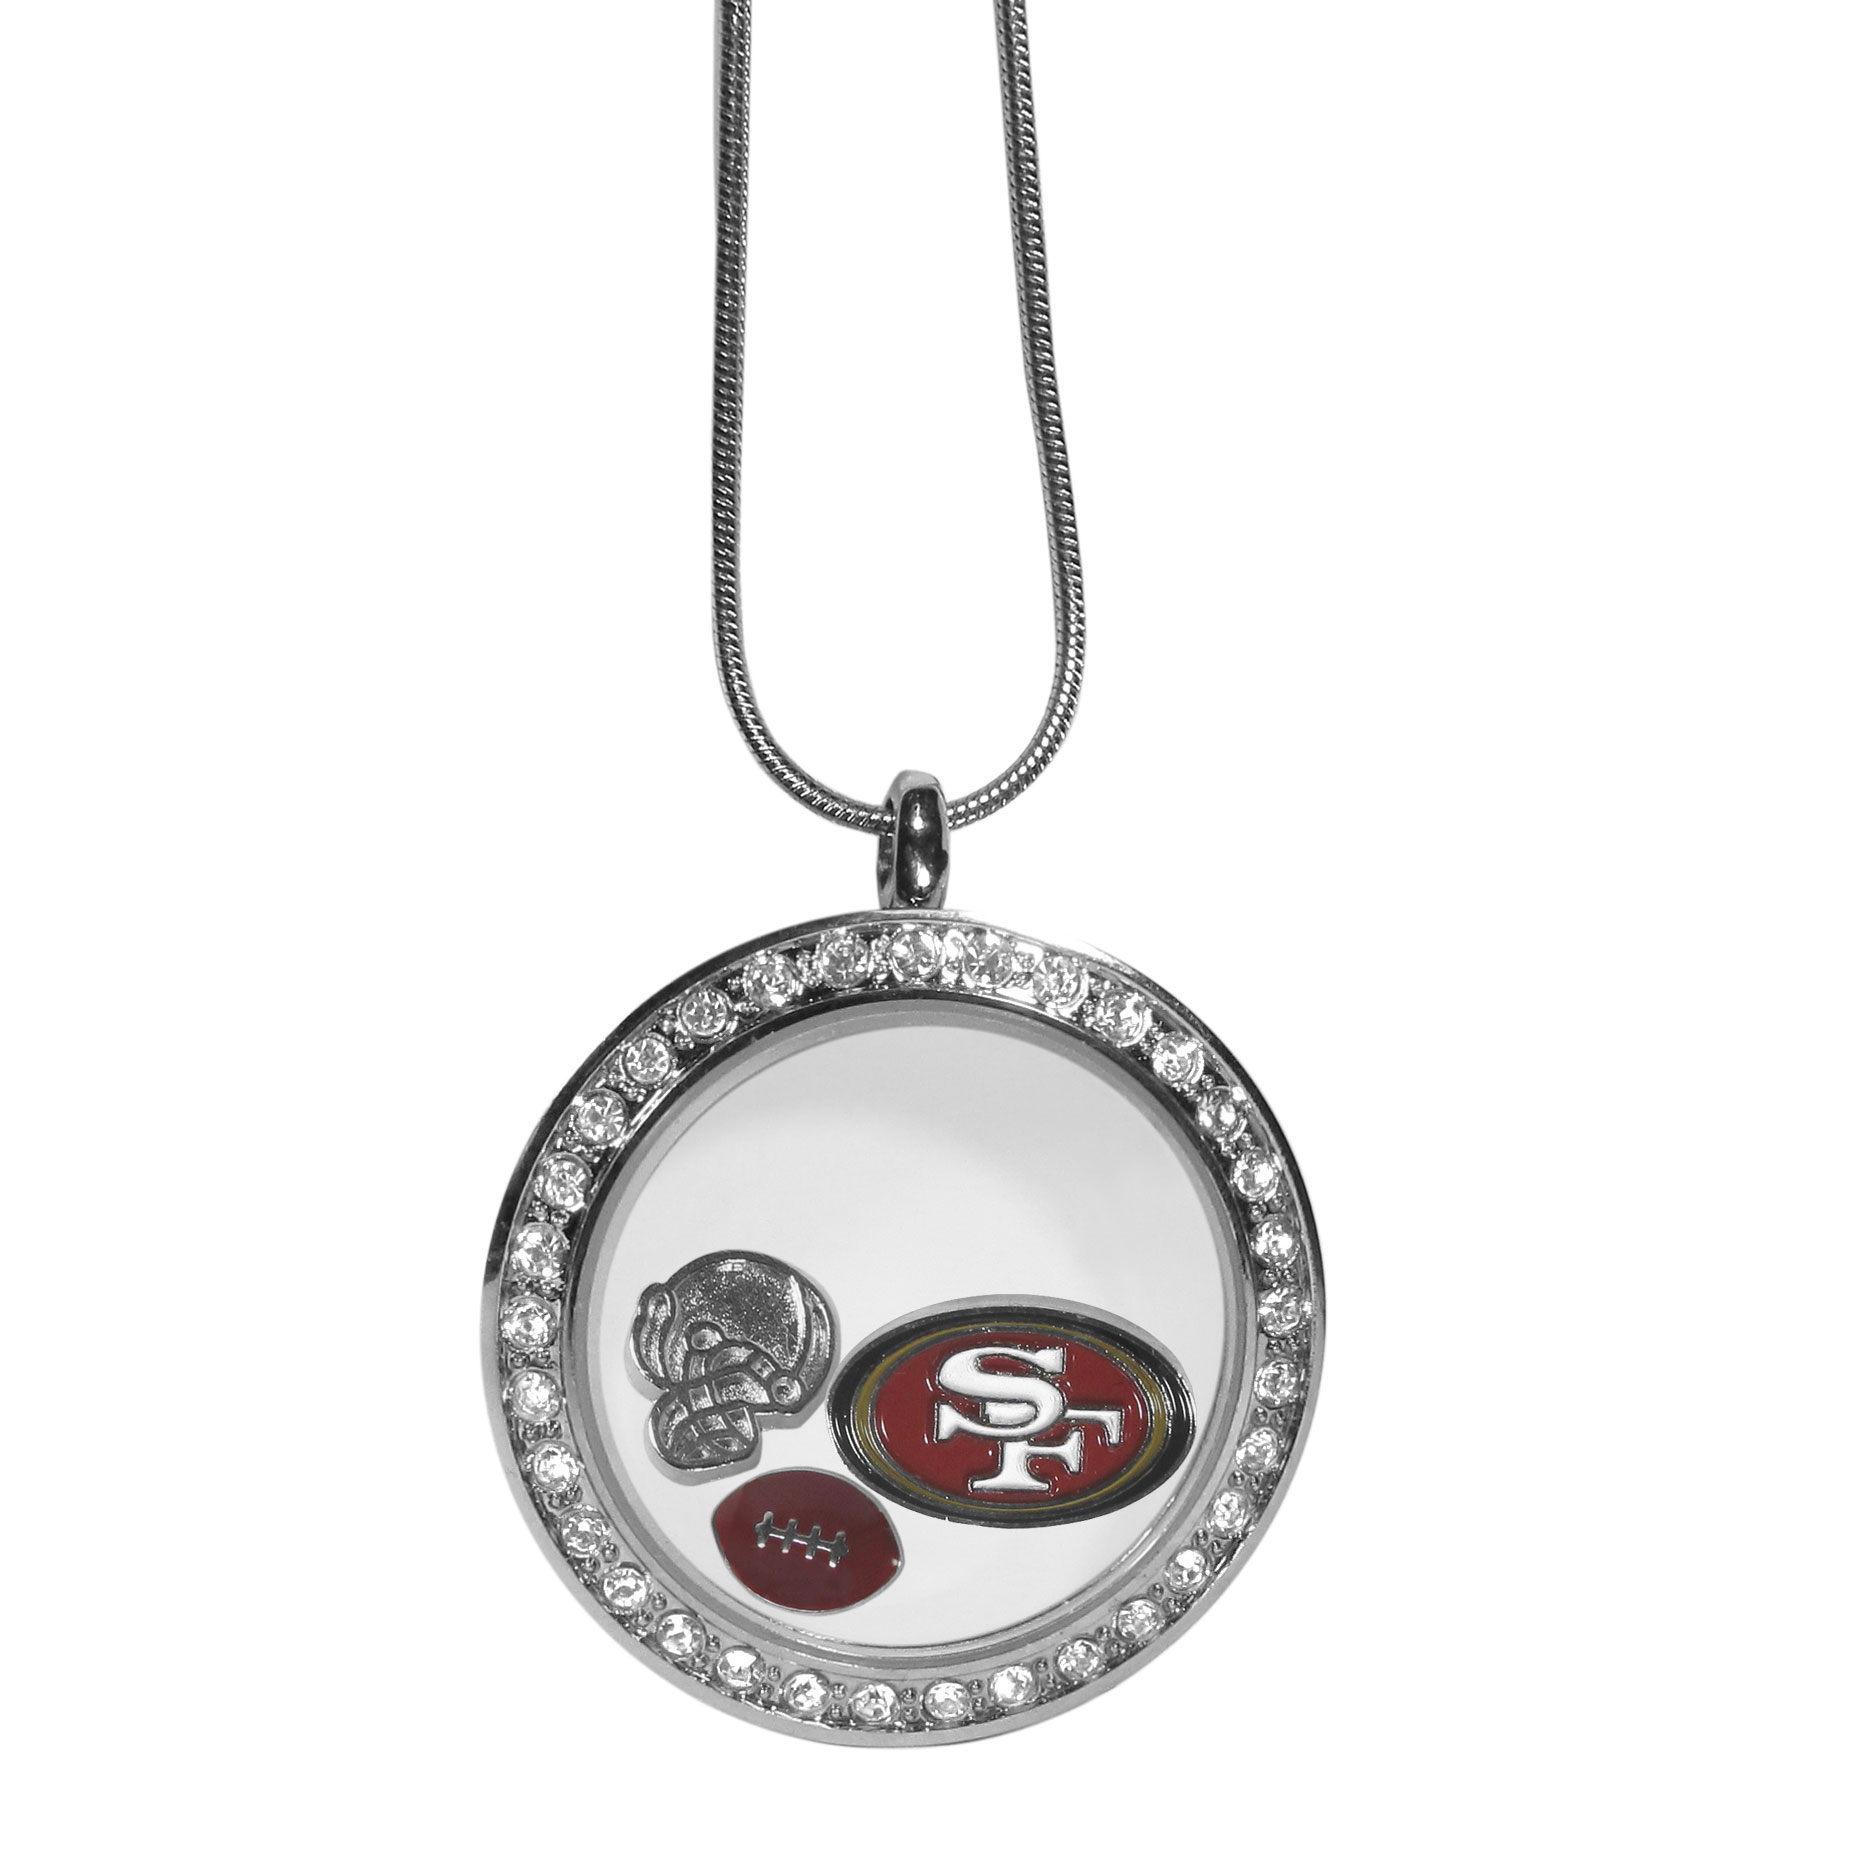 San Francisco 49ers Locket Necklace - We have taken the classic floating charm locket and combined with licensed sports charms to create a must have fan necklace. The necklace comes with 3 charms; 1 San Francisco 49ers charm, one football charm and one helmet charm. The charms float in a beautiful locket that has a strong magnetic closure with a rhinestone border. The locket comes on an 18 inch snake chain with 2 inch extender.